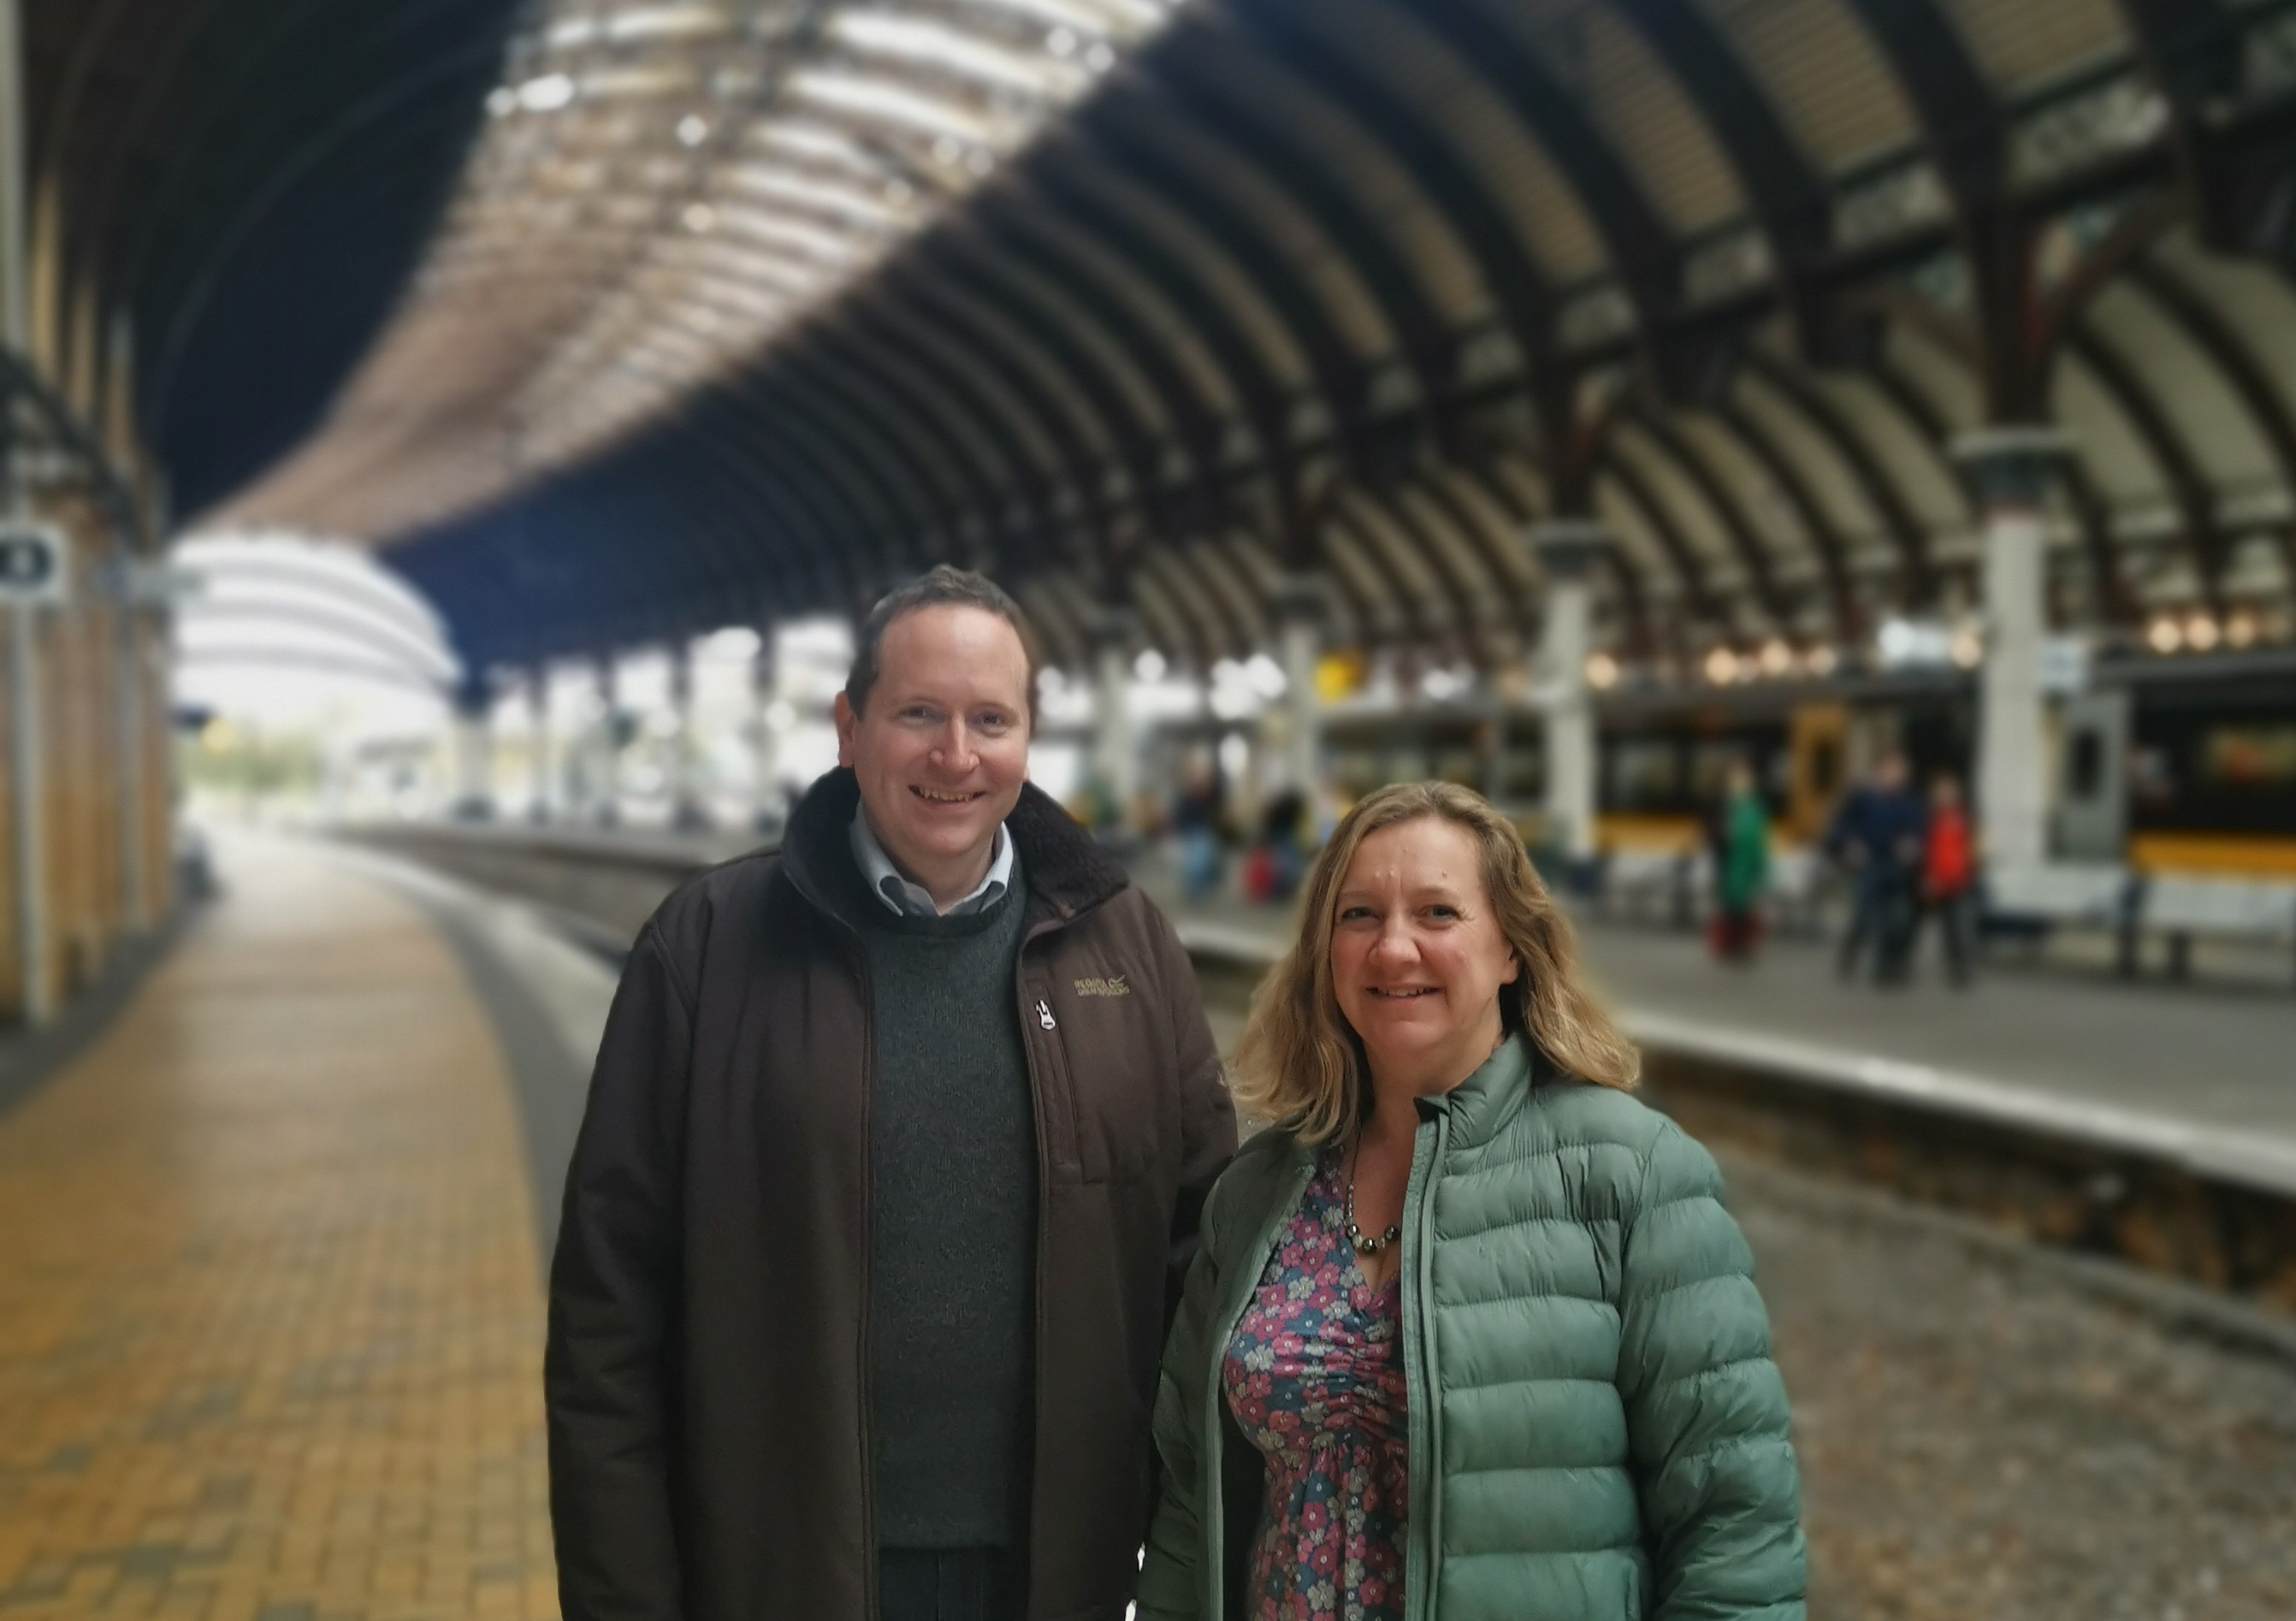 Liberal Democrats will freeze rail fare increases in York, saving thousands of pounds for local commuters